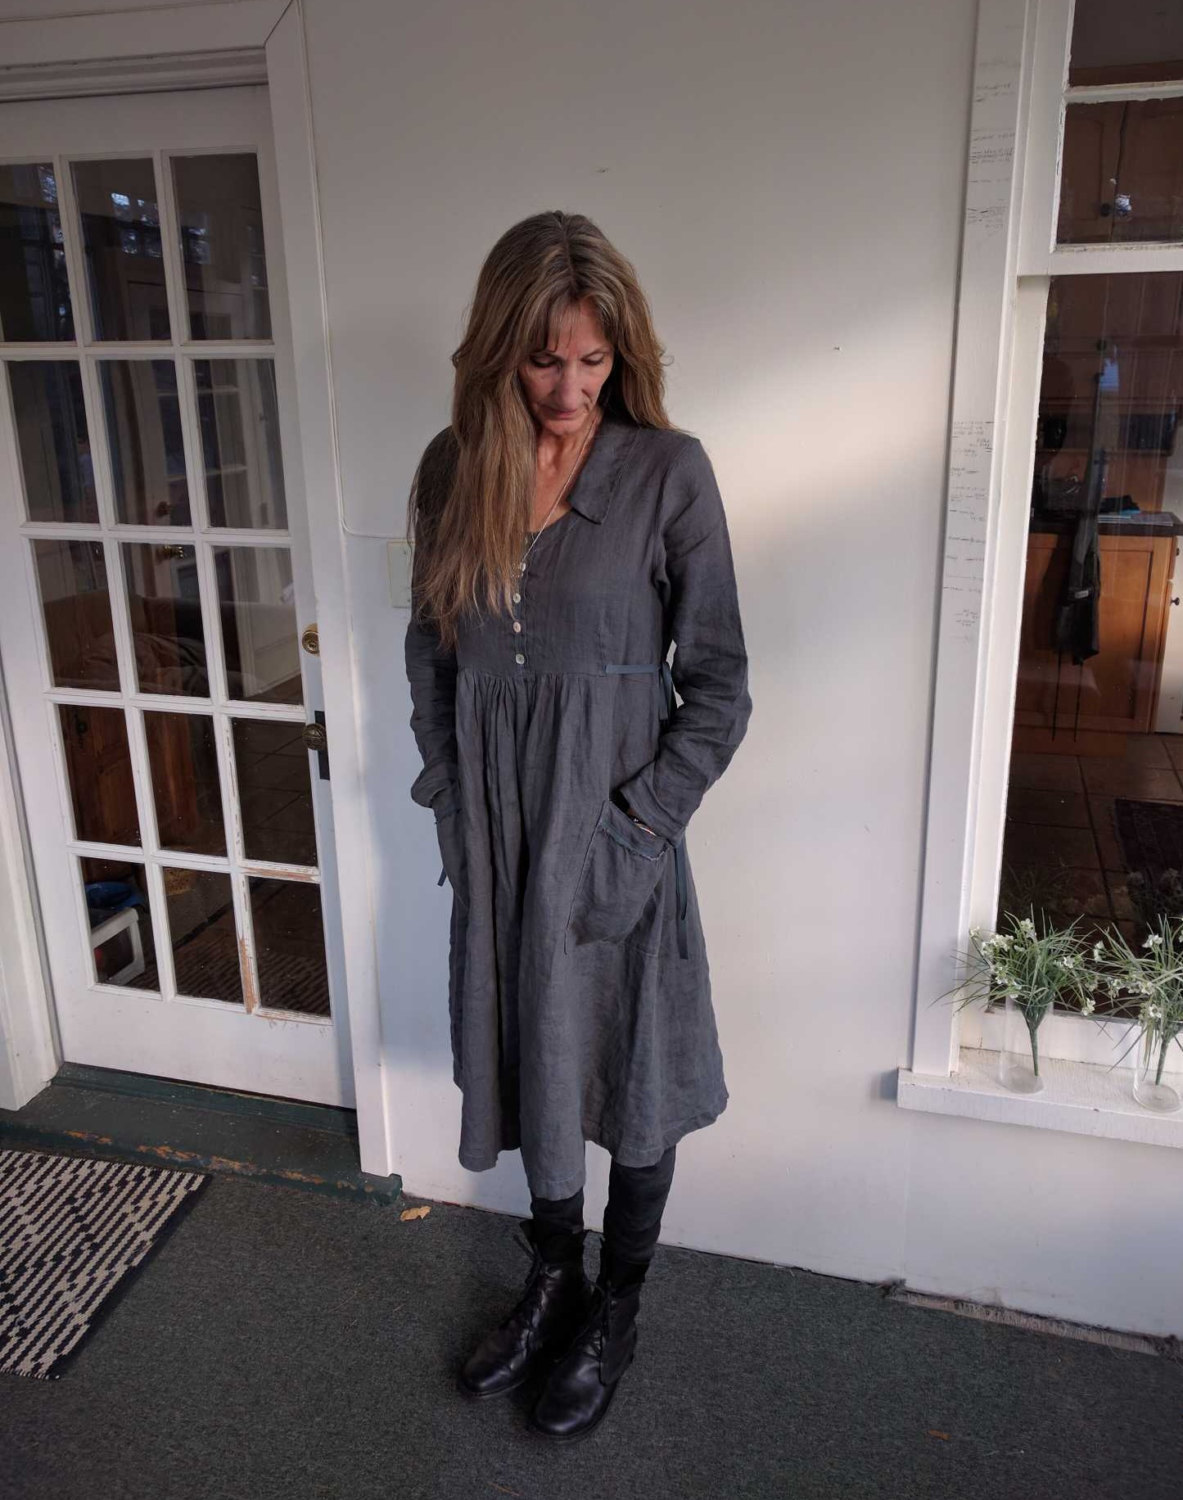 Beth, Charcoal Grey 100% linen Caroline dress. This dress has a sweet collar, slightly raised bodice wit...